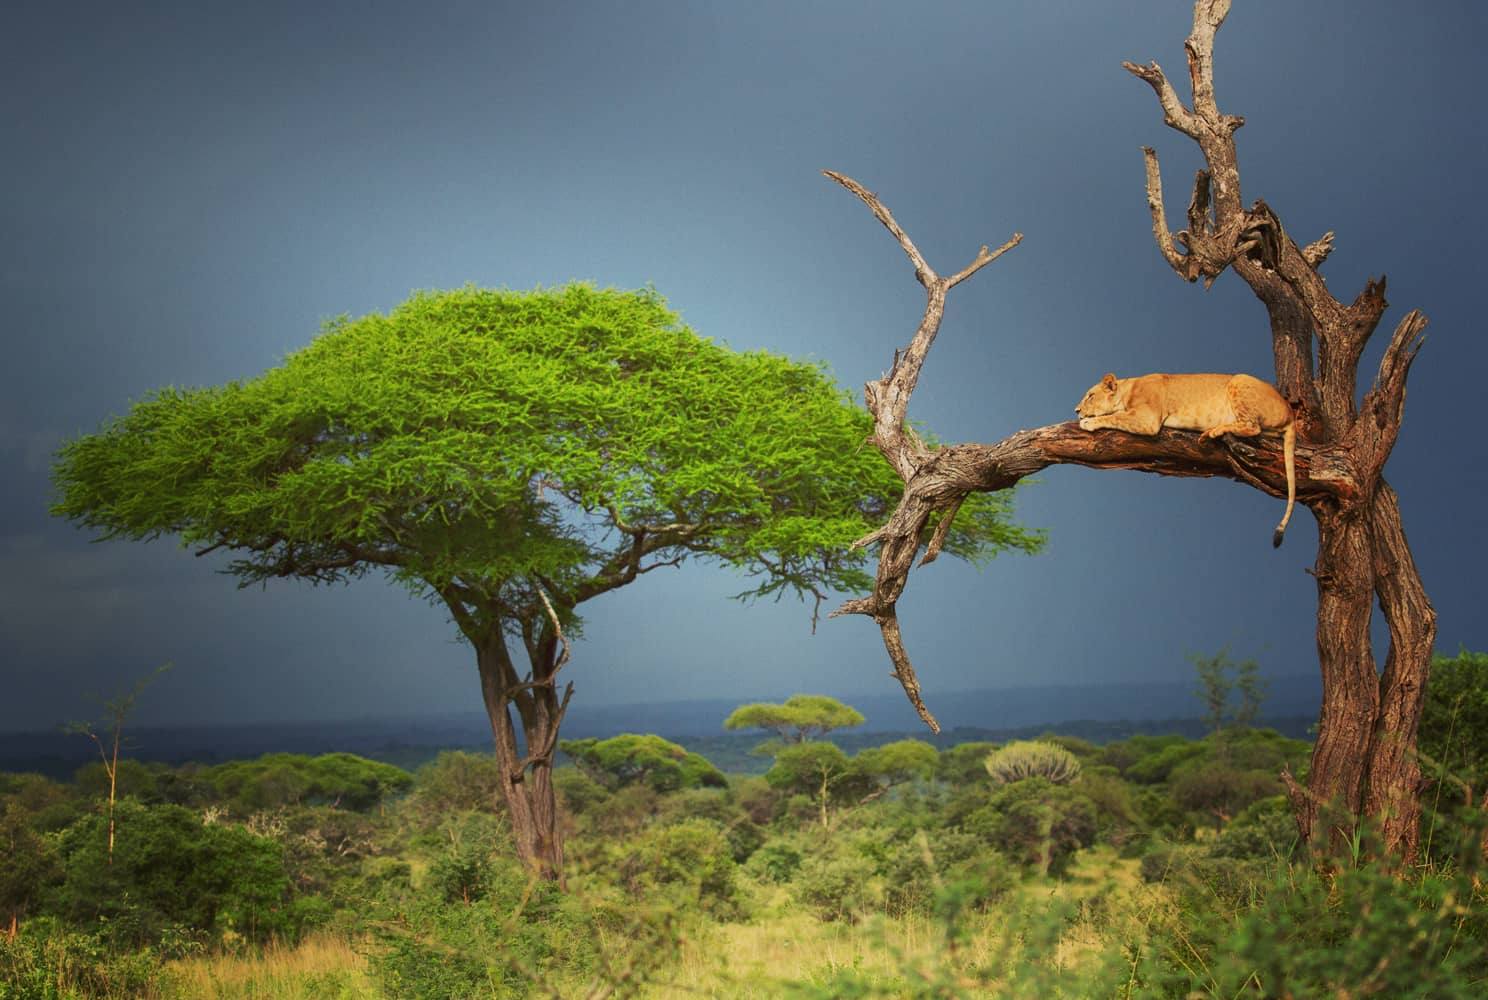 Lioness-in-tree-feature -c